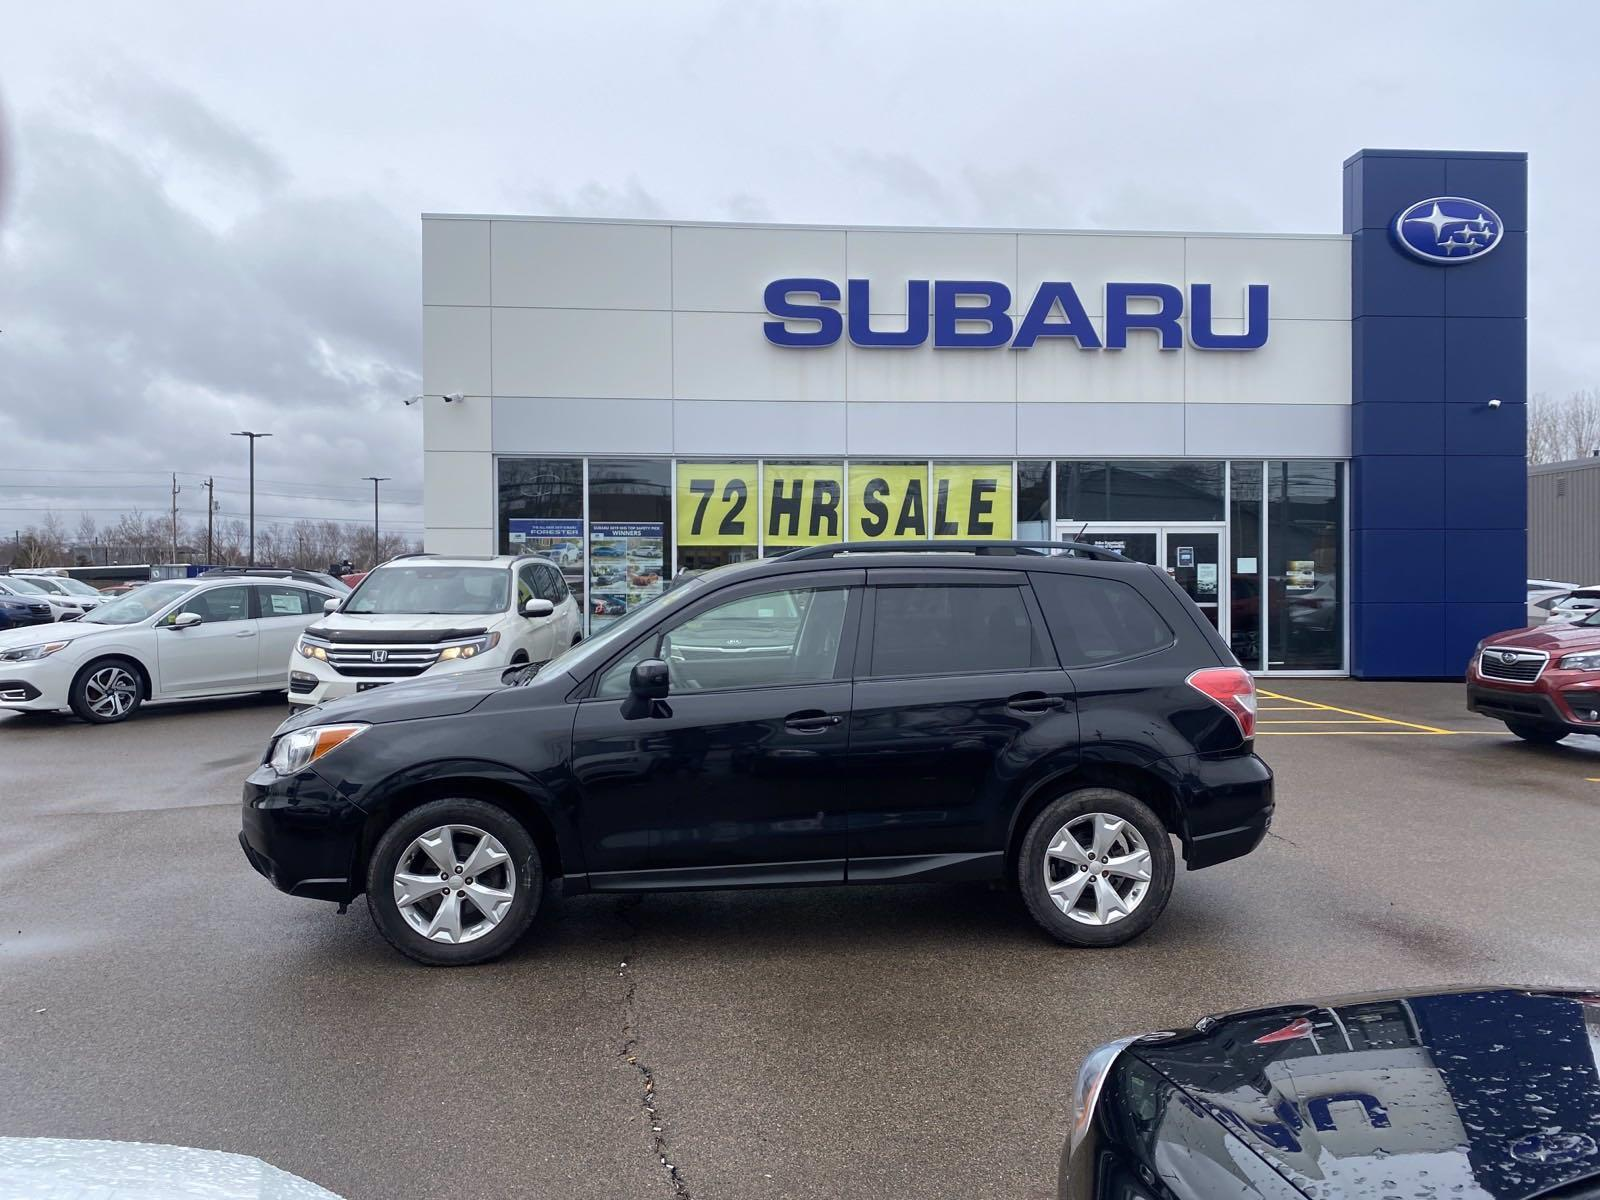 2015 Subaru Forester 2.5i Convenience Package - 127,593km